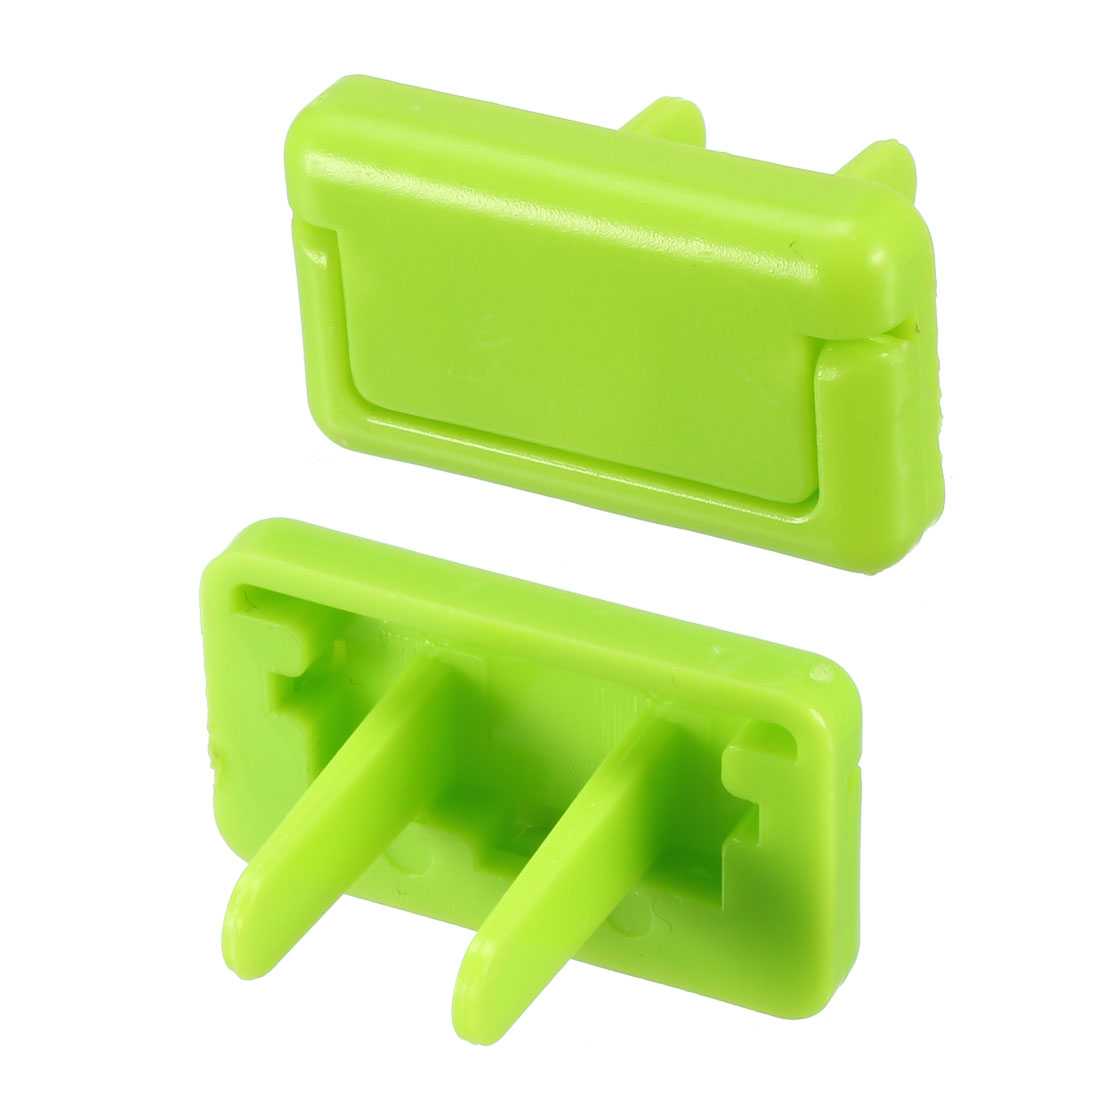 US Stand Power Socket Covers Durable Electrical Protector Cap Green 40 Pcs